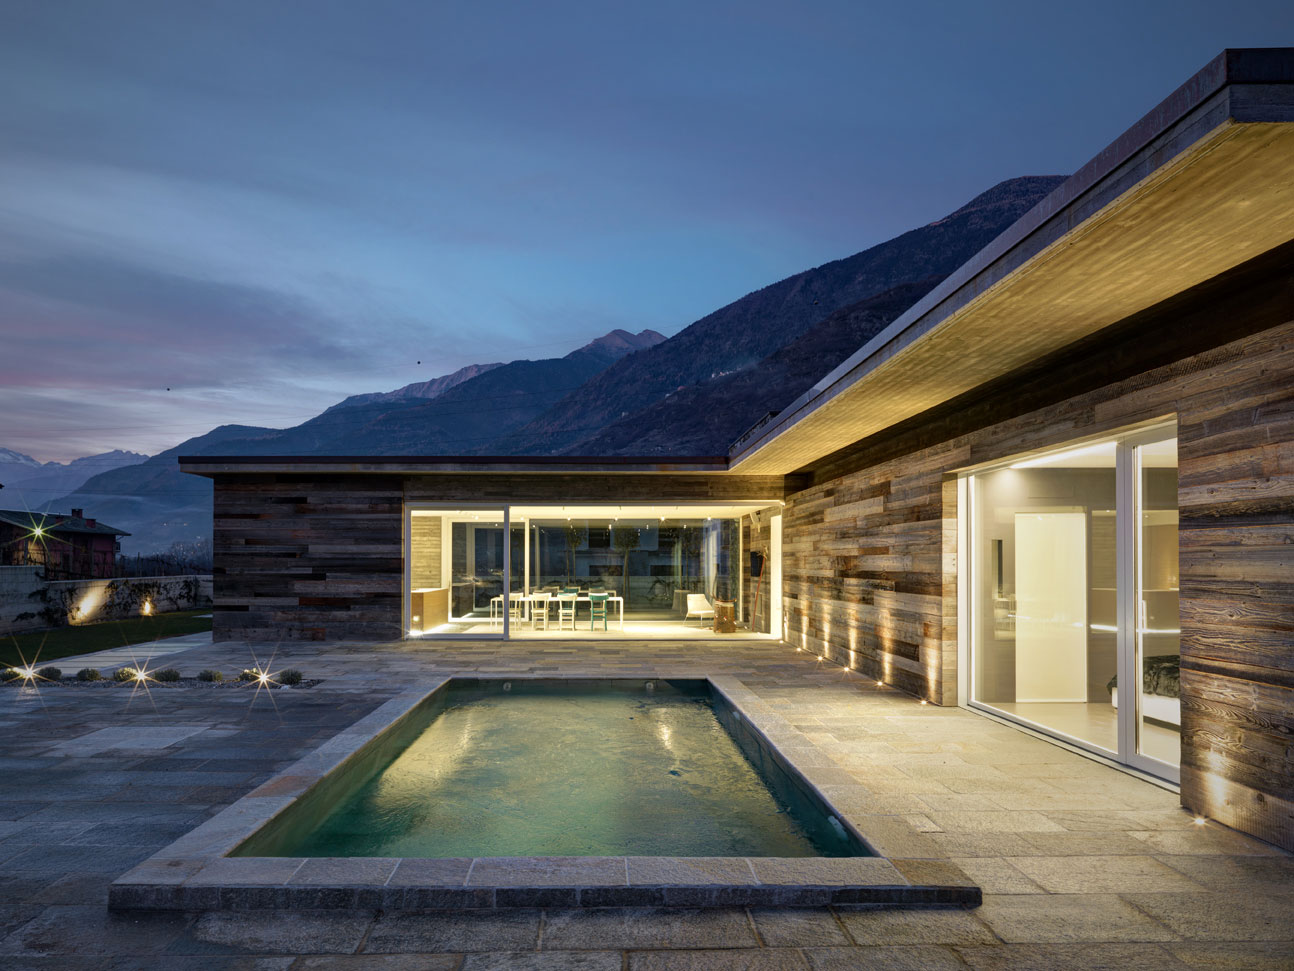 Rocco Borromini Designs a Cozy Stone Home Surrounded by the Stunning Mountains of Sondrio, Italy